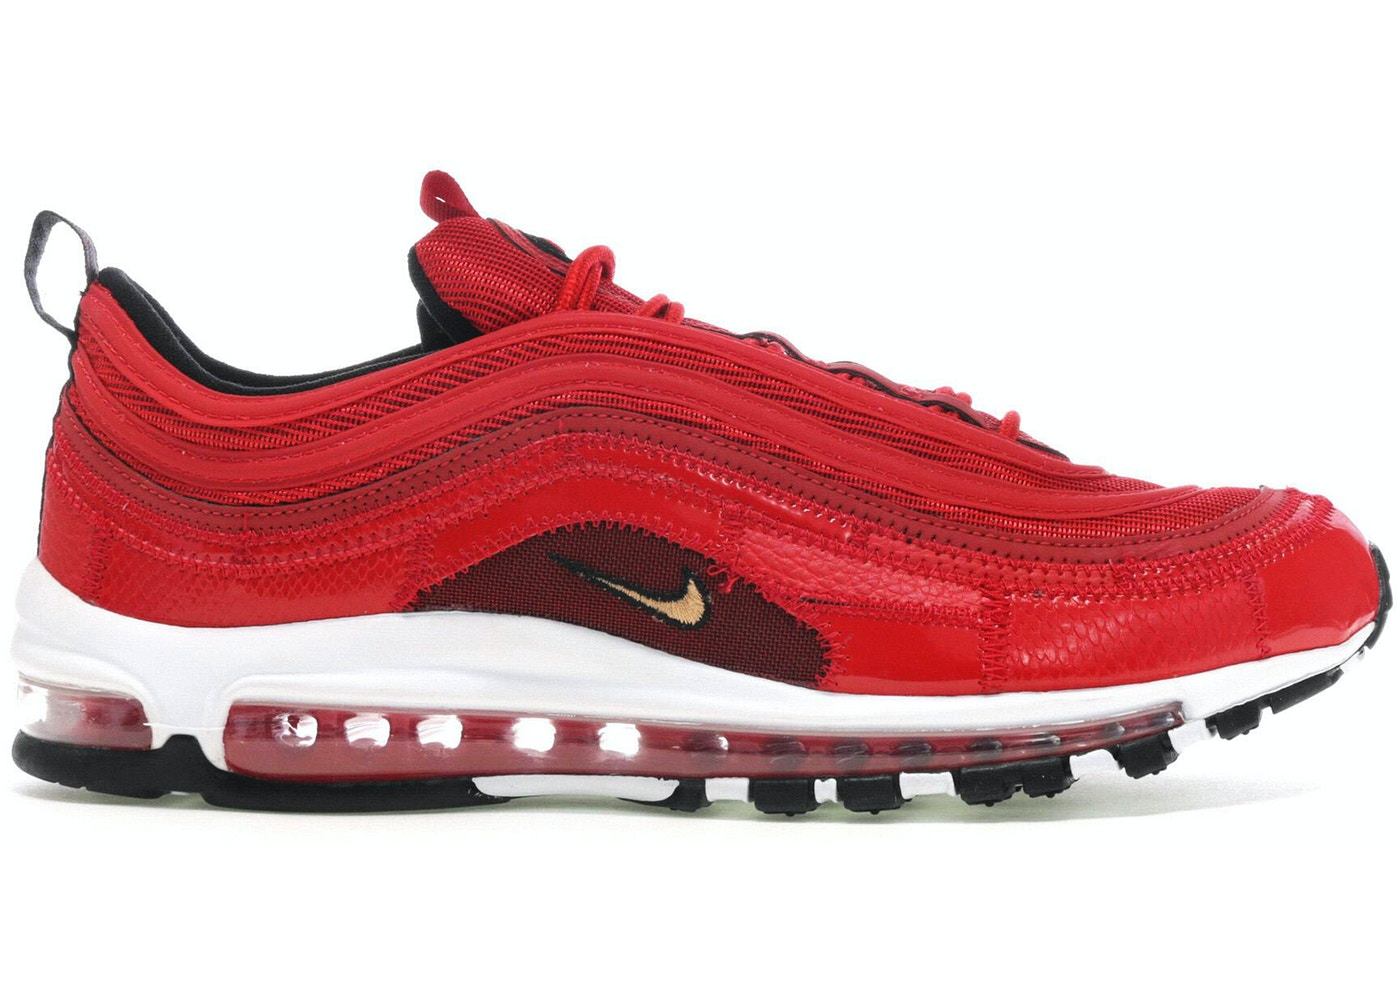 super popular 487a3 2ea6c Air Max 97 Cristiano Ronaldo Portugal Patchwork